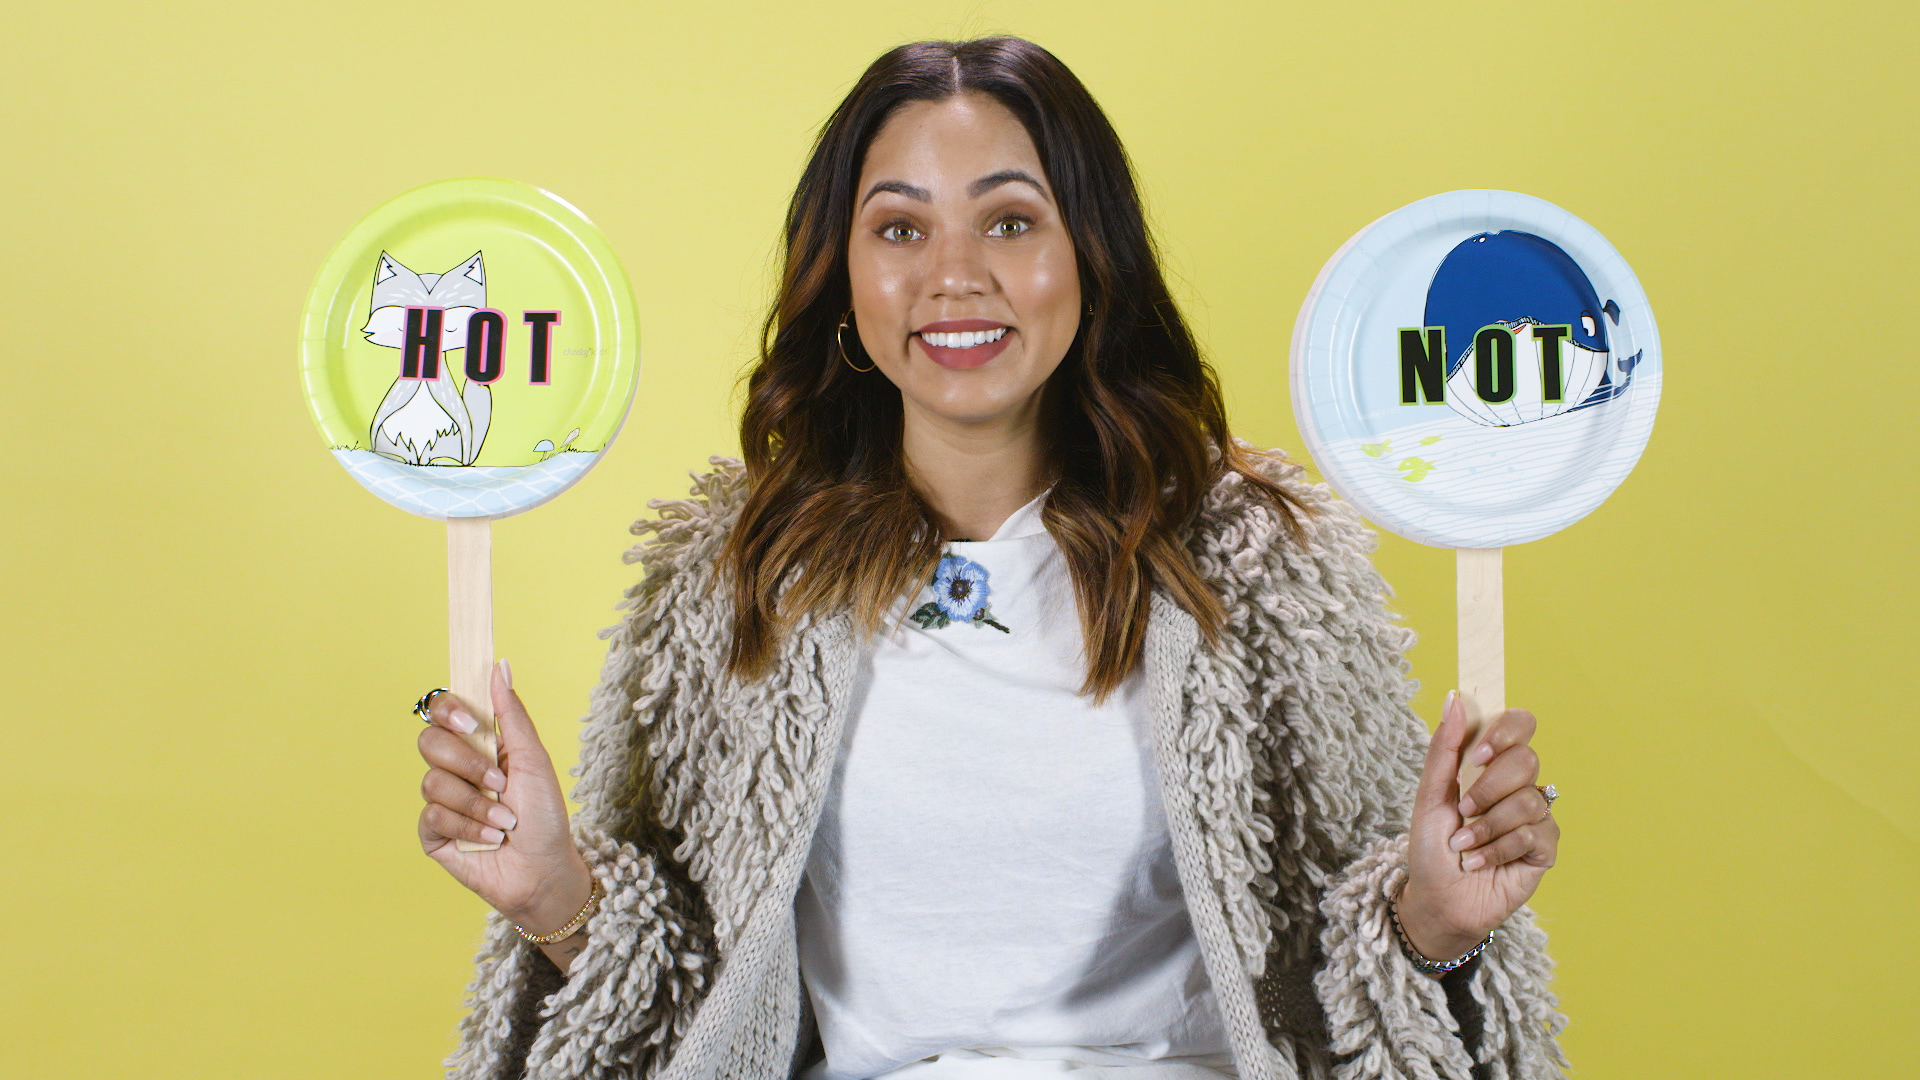 Hot or Not With Ayesha Curry